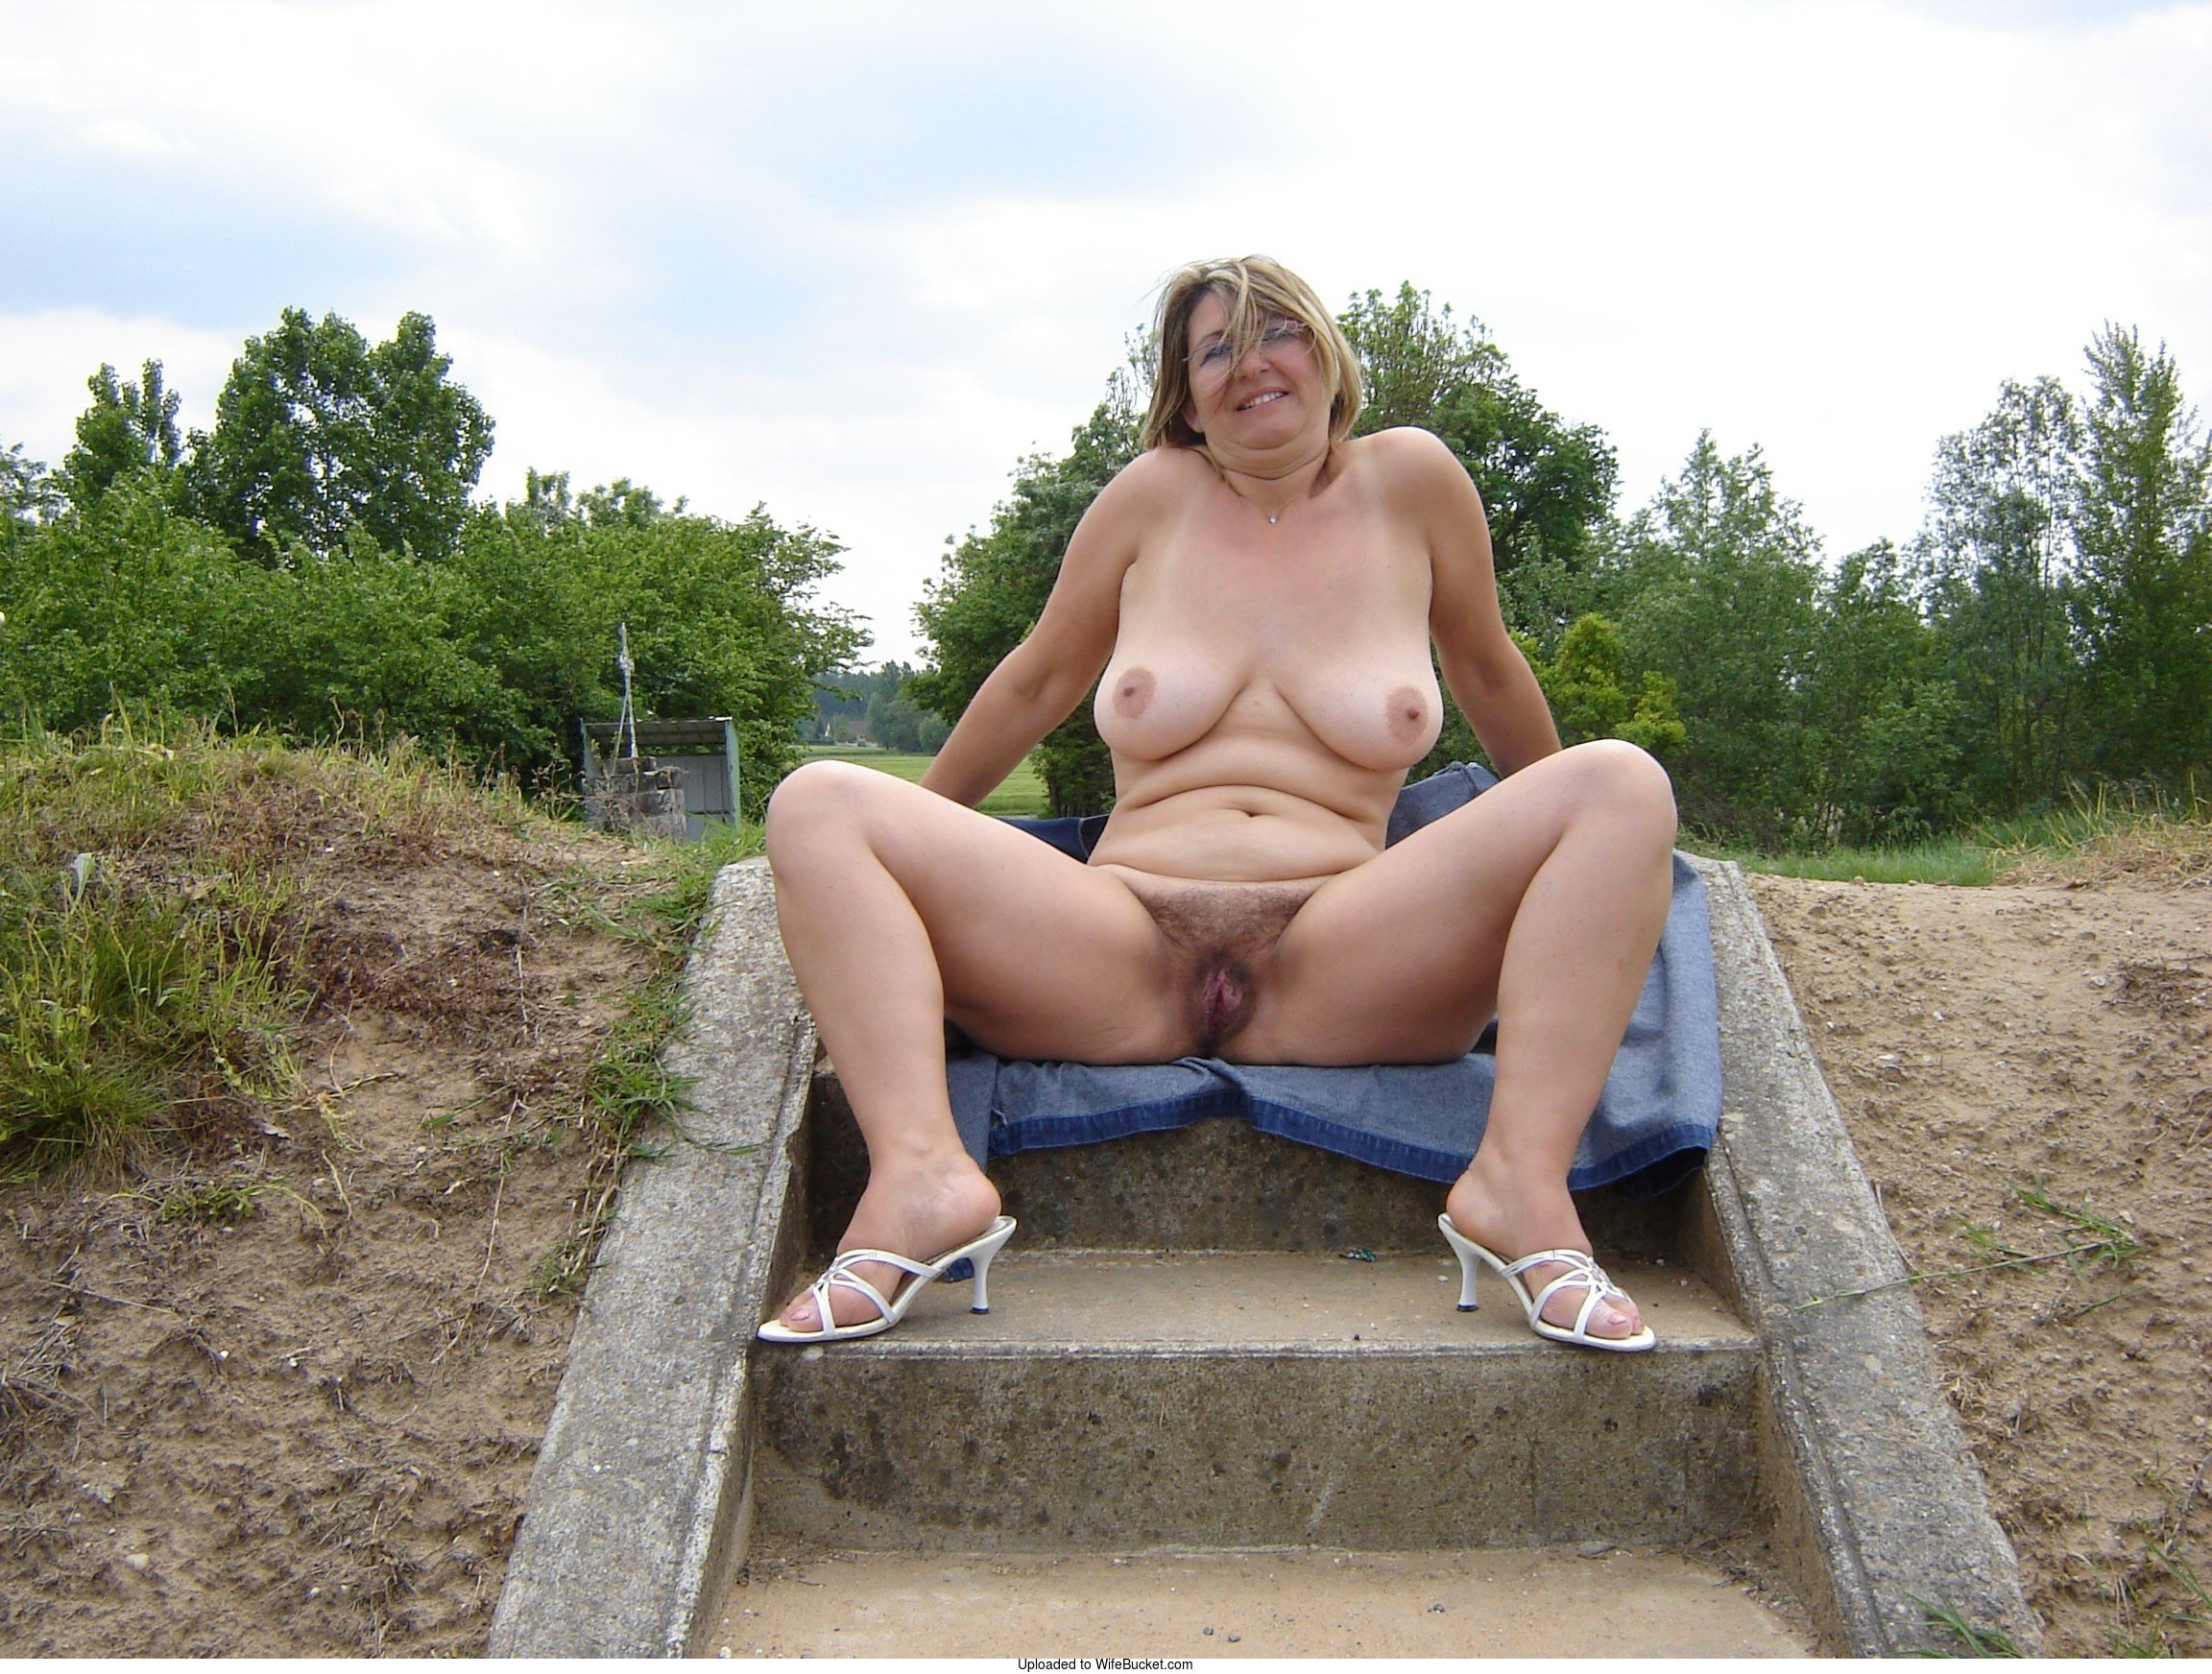 Wifebucket  Mature Mom Of 3 Loves Being Naked In Public-7430